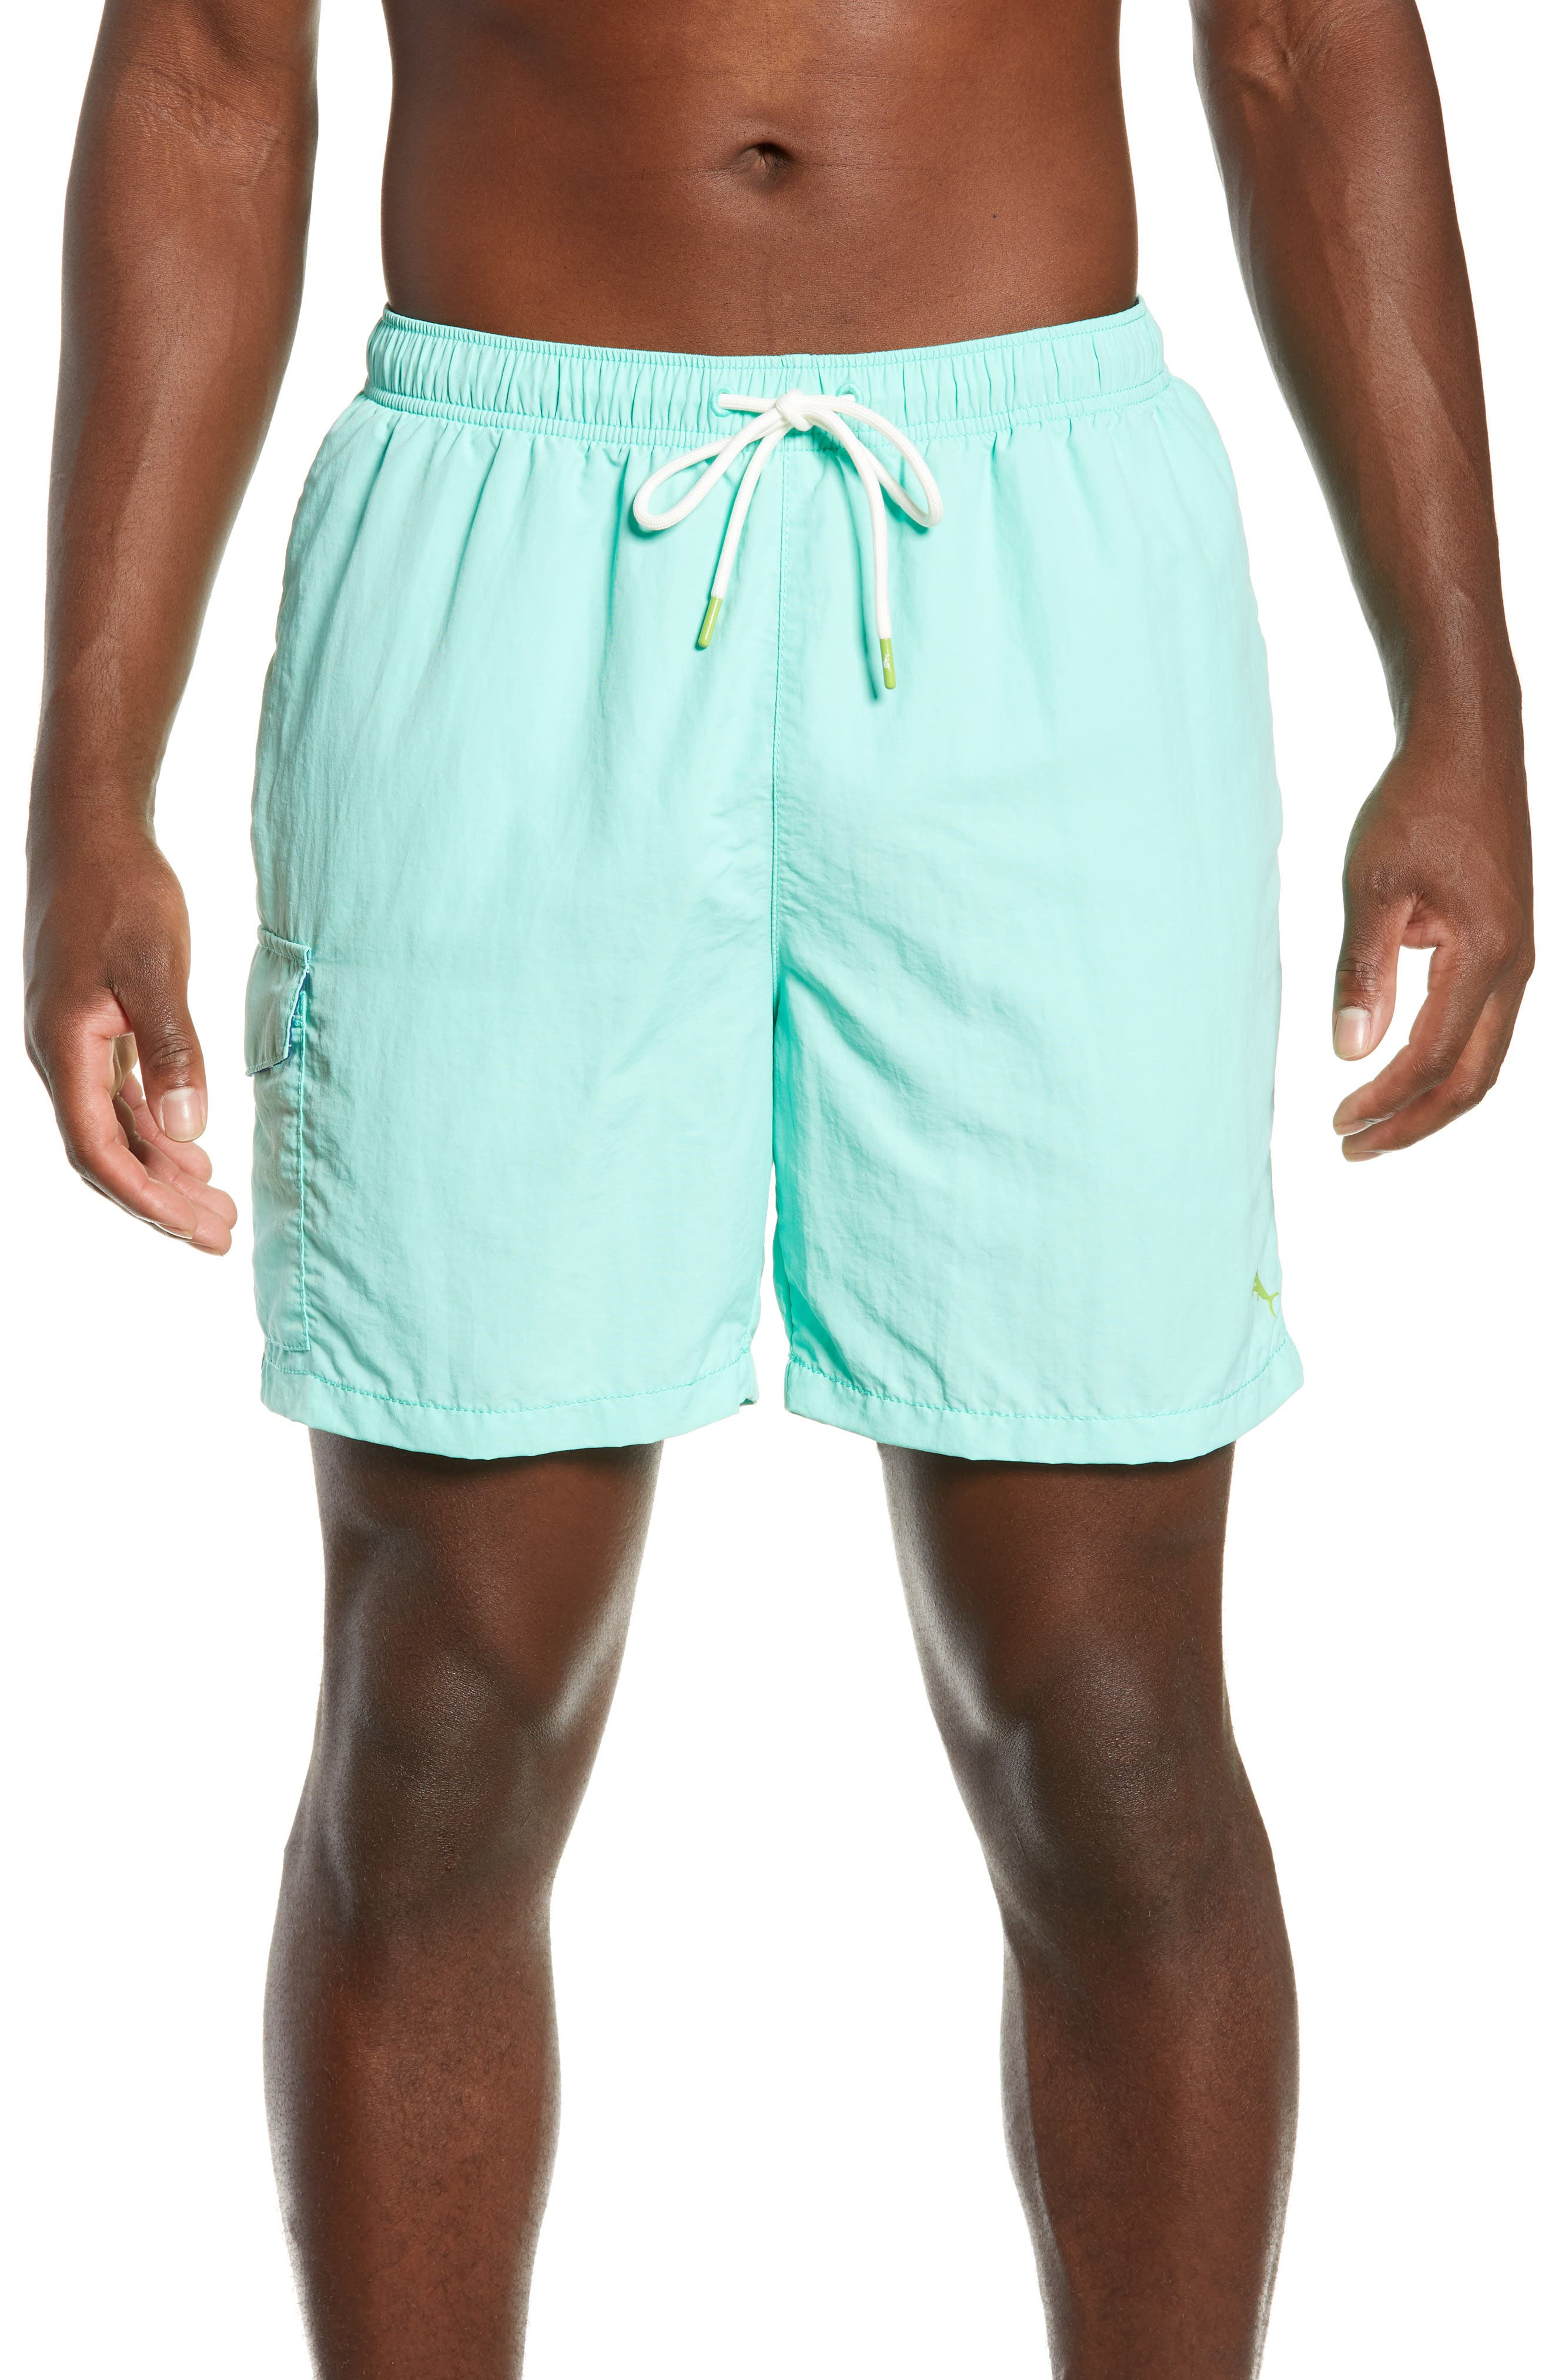 Naples Coast Swim Trunks,                         Main,                         color, 302